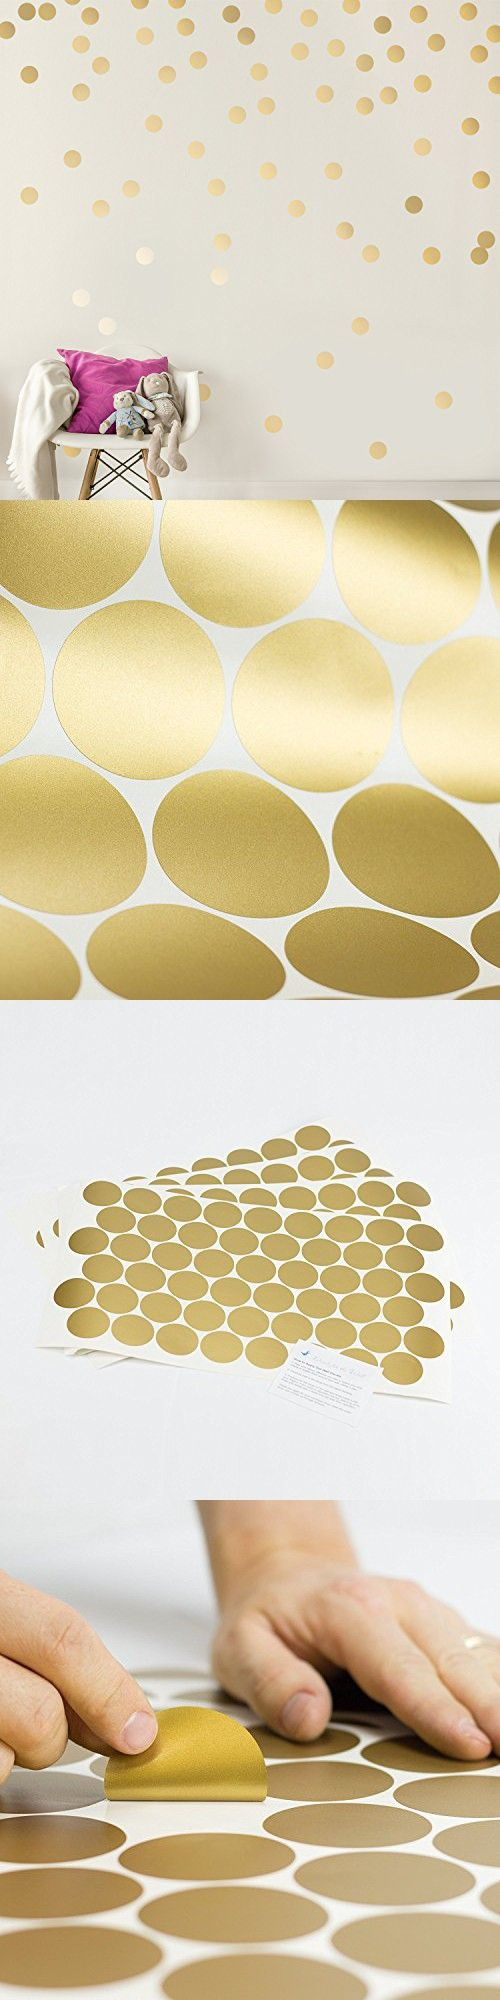 Easy Peel + Stick Gold Wall Decal Dots - 2 Inch (200 Decals) - Safe ...